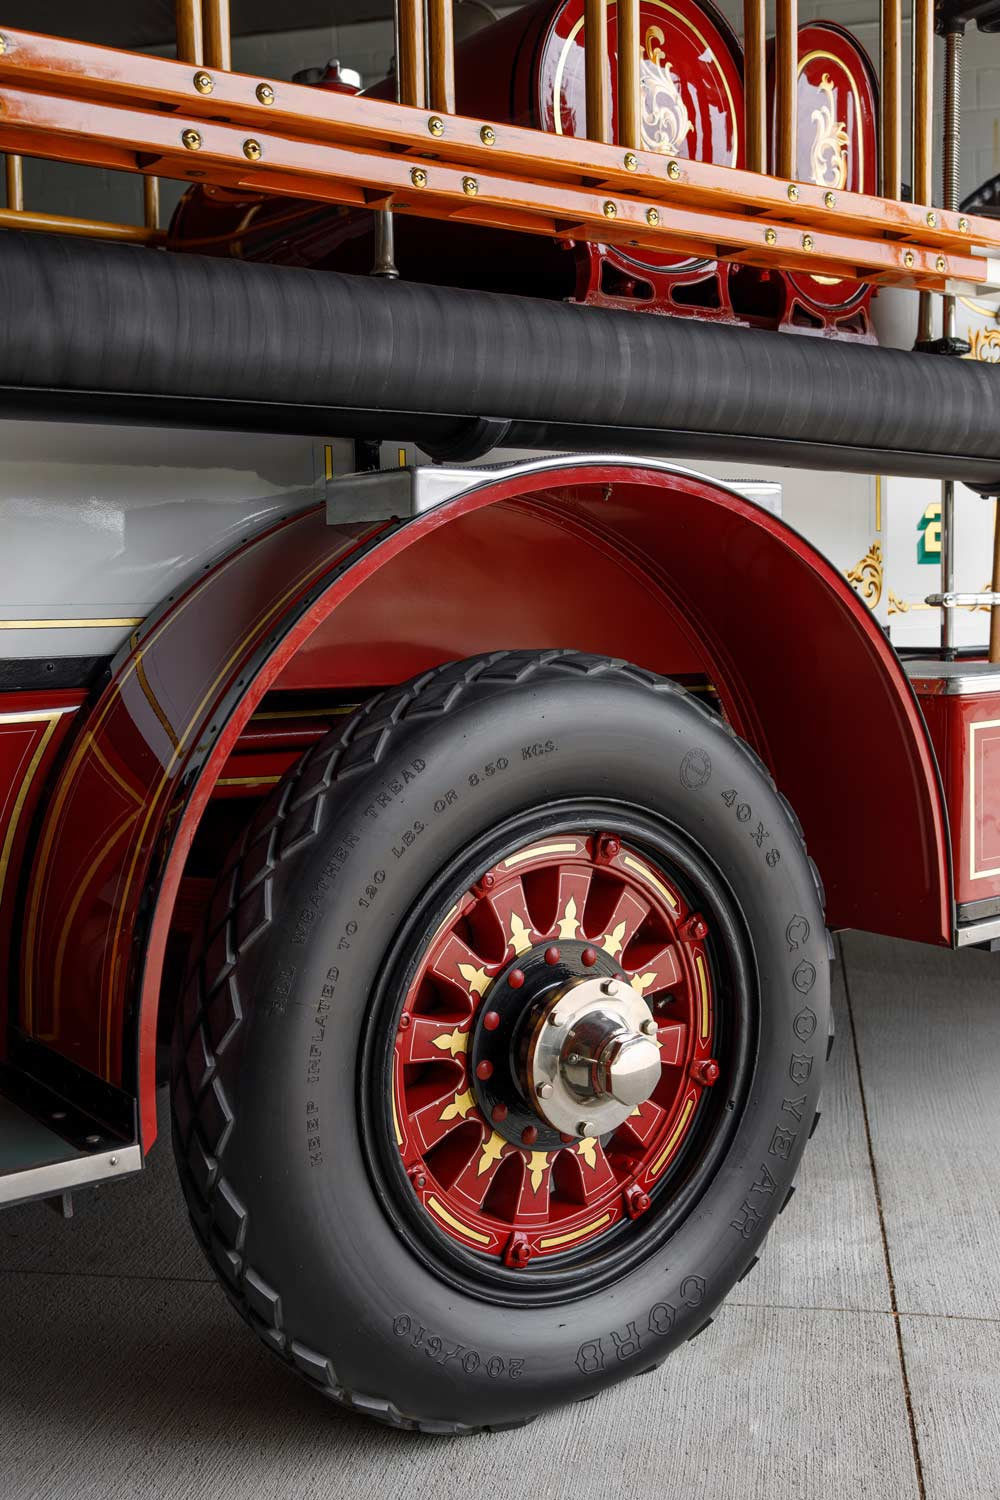 1925 Ahrens-Fox Firetruck - The JBS Collection